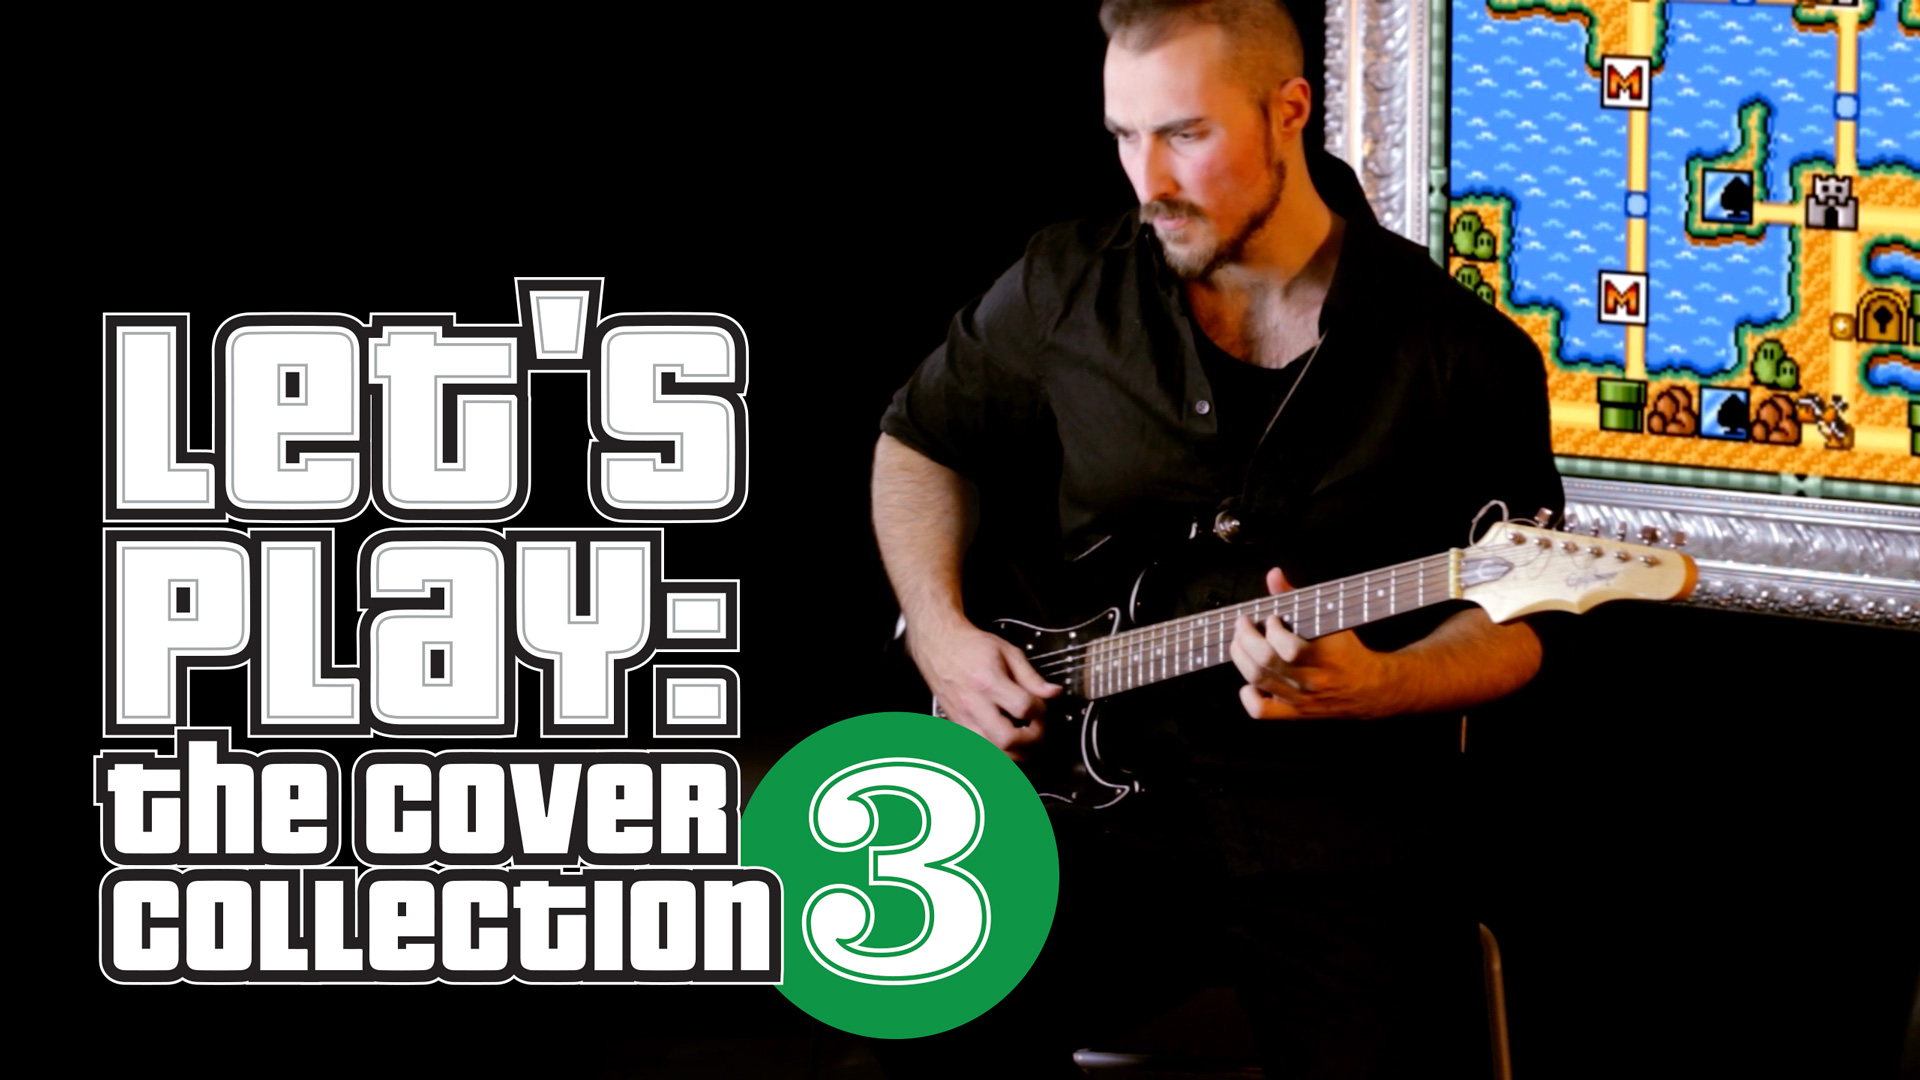 Super Mario Bros 3 – Sea Side (Bossa Nova Cover)